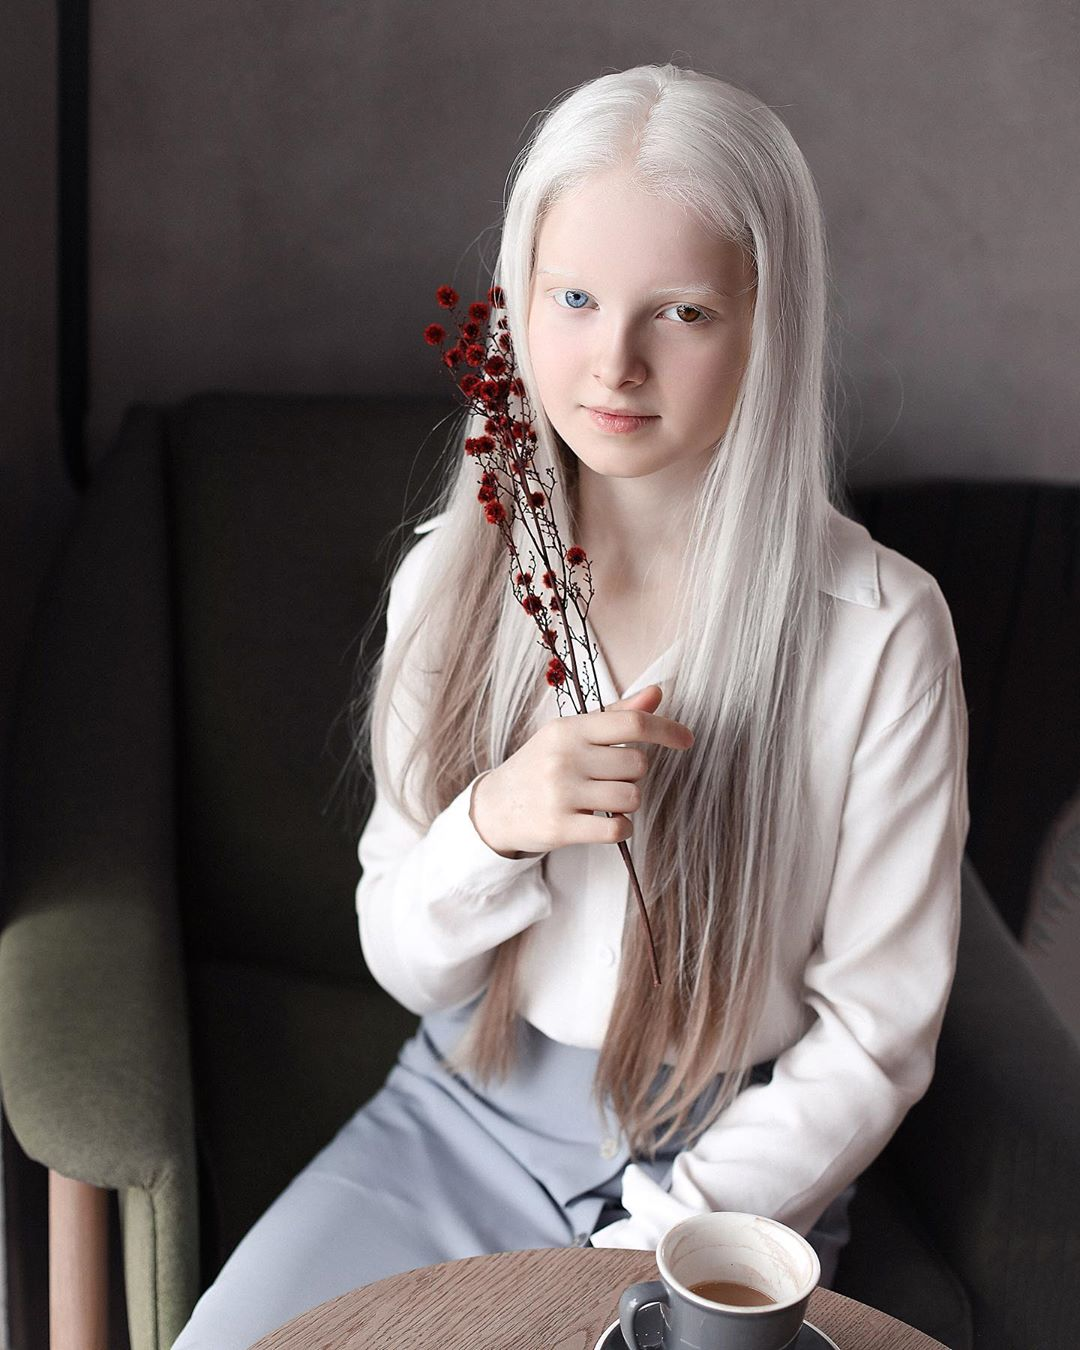 amina ependieva – a girl who inherited two genetic mutations and exceptional beauty